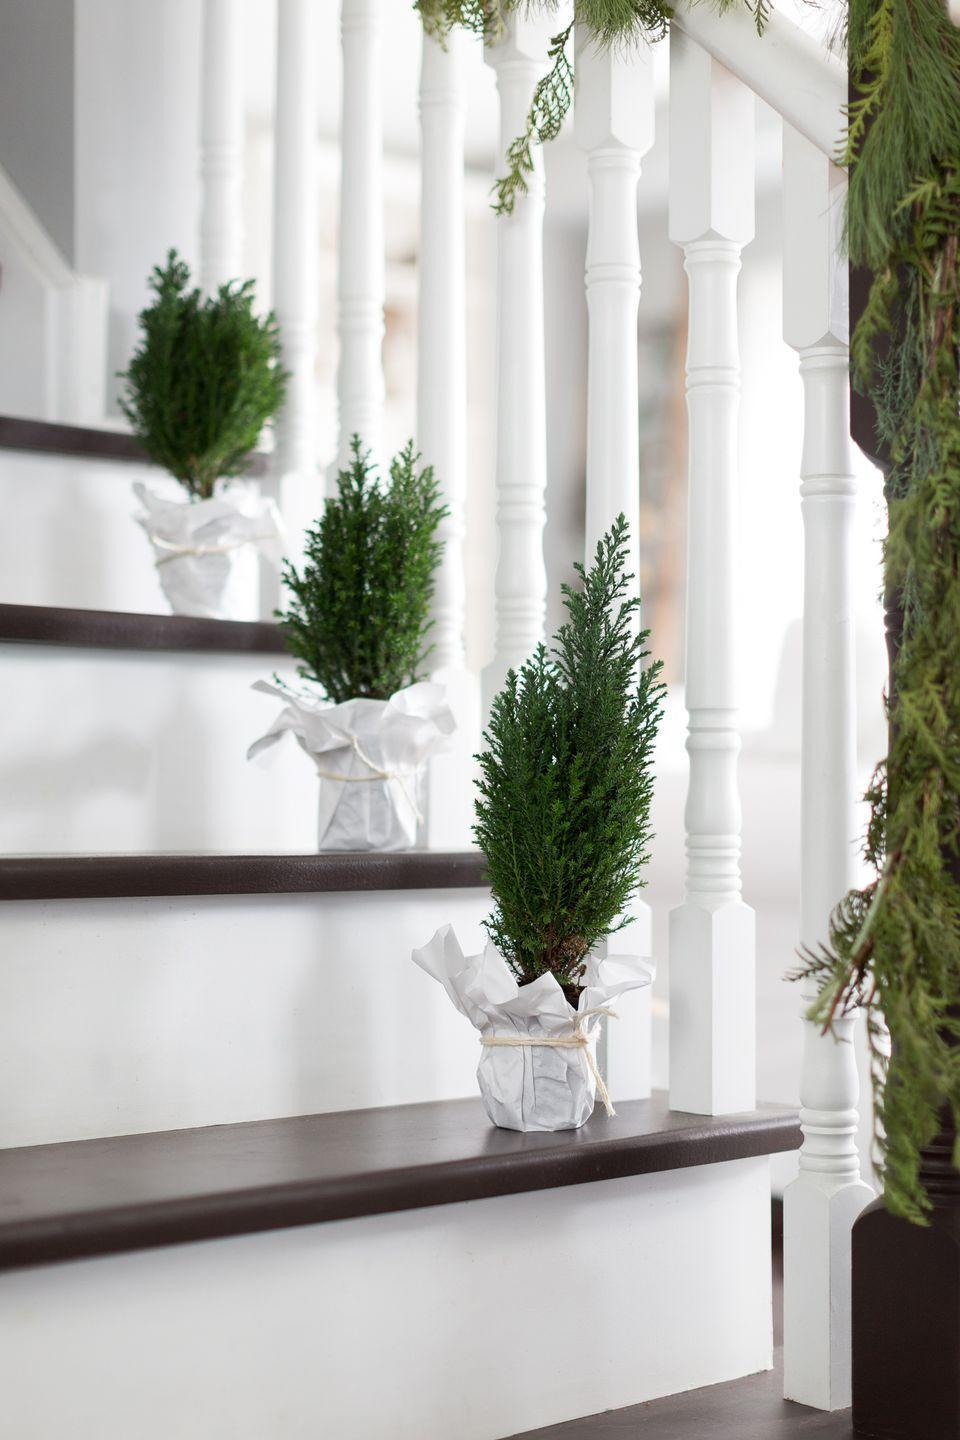 """<p>For a sweet surprise when you round the corner to climb the stairs, add small potted plants to each tread. If you don't want to worry about watering, opt for fake trees. </p><p><em>See more at <a href=""""https://www.craftberrybush.com/2016/11/christmas-house-tour-2016.html"""" rel=""""nofollow noopener"""" target=""""_blank"""" data-ylk=""""slk:Craftberry Bush"""" class=""""link rapid-noclick-resp"""">Craftberry Bush</a>.</em></p>"""